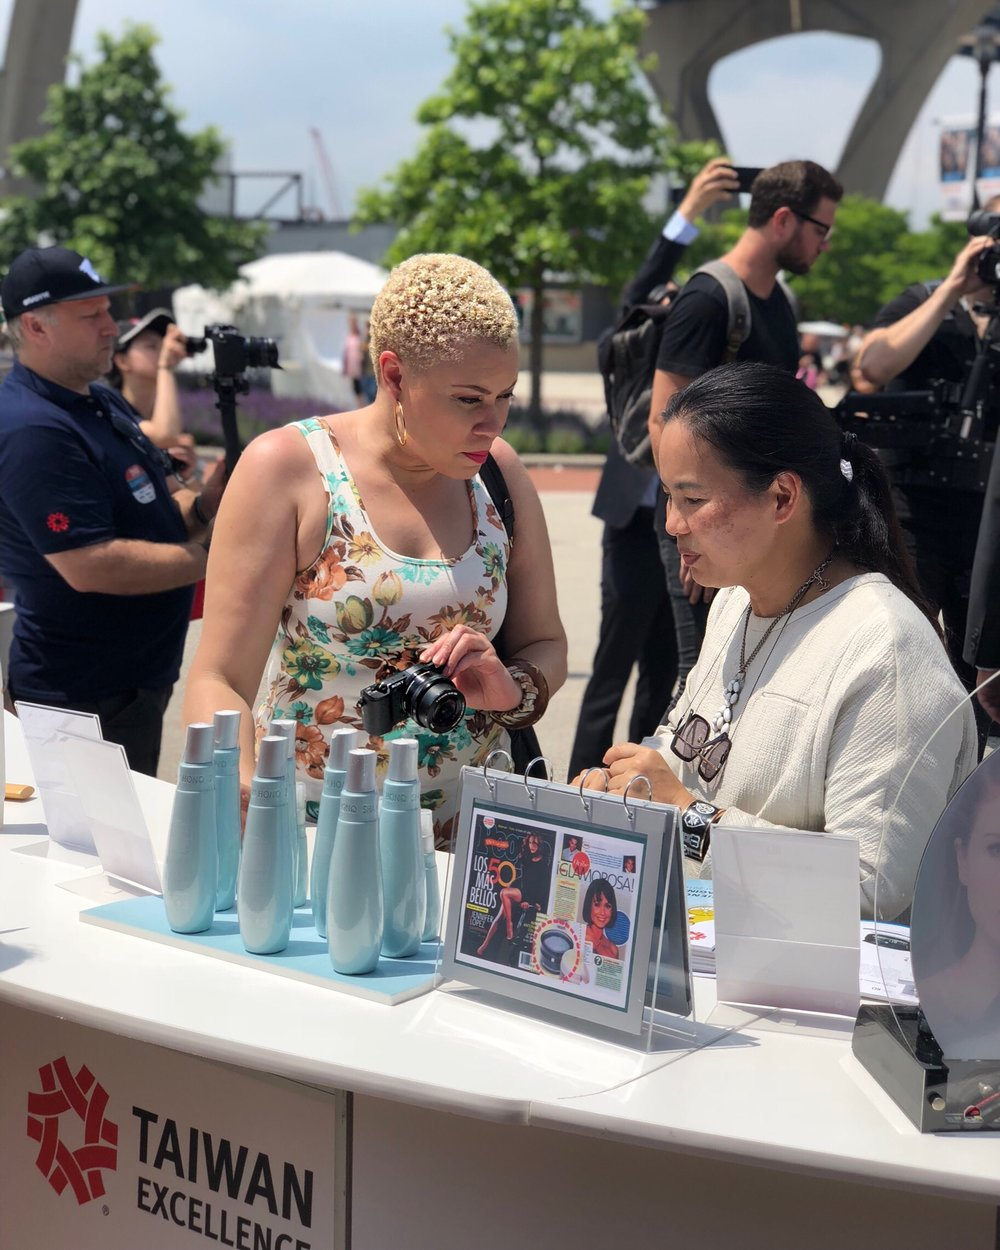 Beauty Recap: The Taiwan Excellence Booth at Summerfest 2018 was Everything